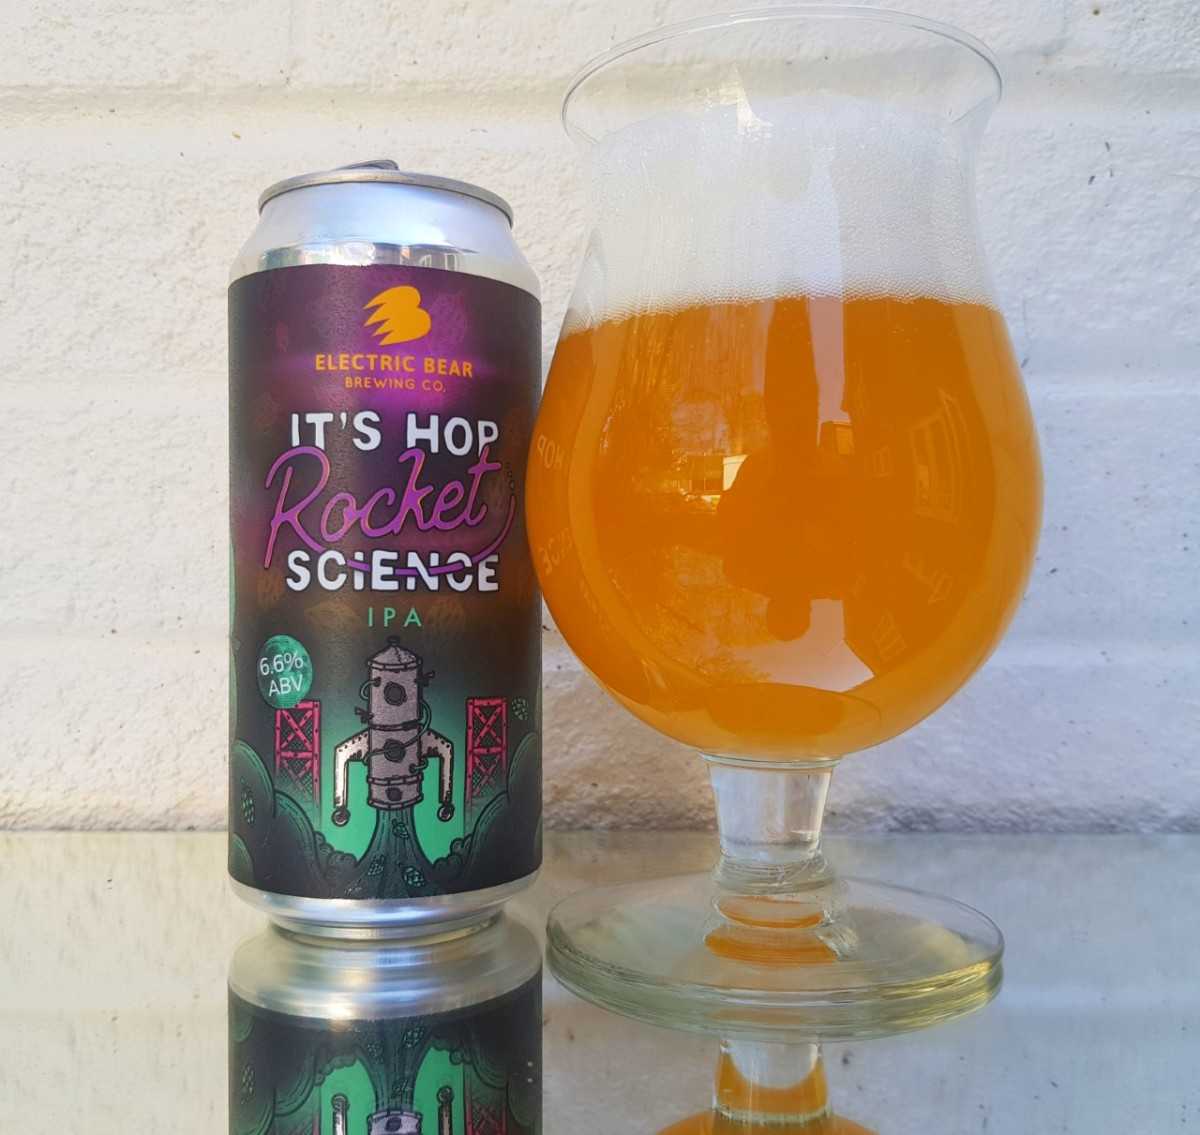 IT'S HOP ROCKET SCIENCE